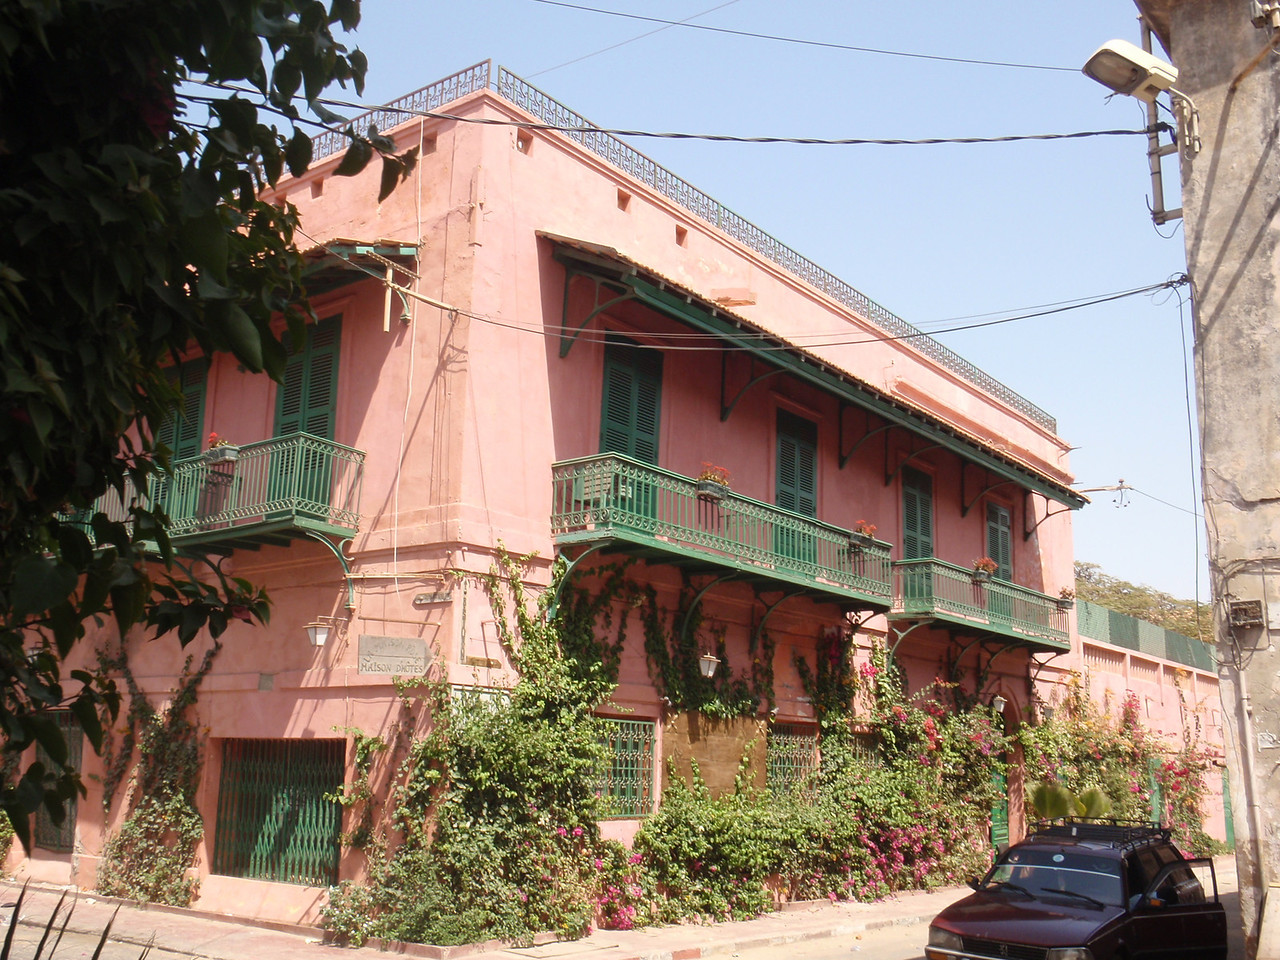 098_La Maison Rose  Colonial Building with Patio and Balconies